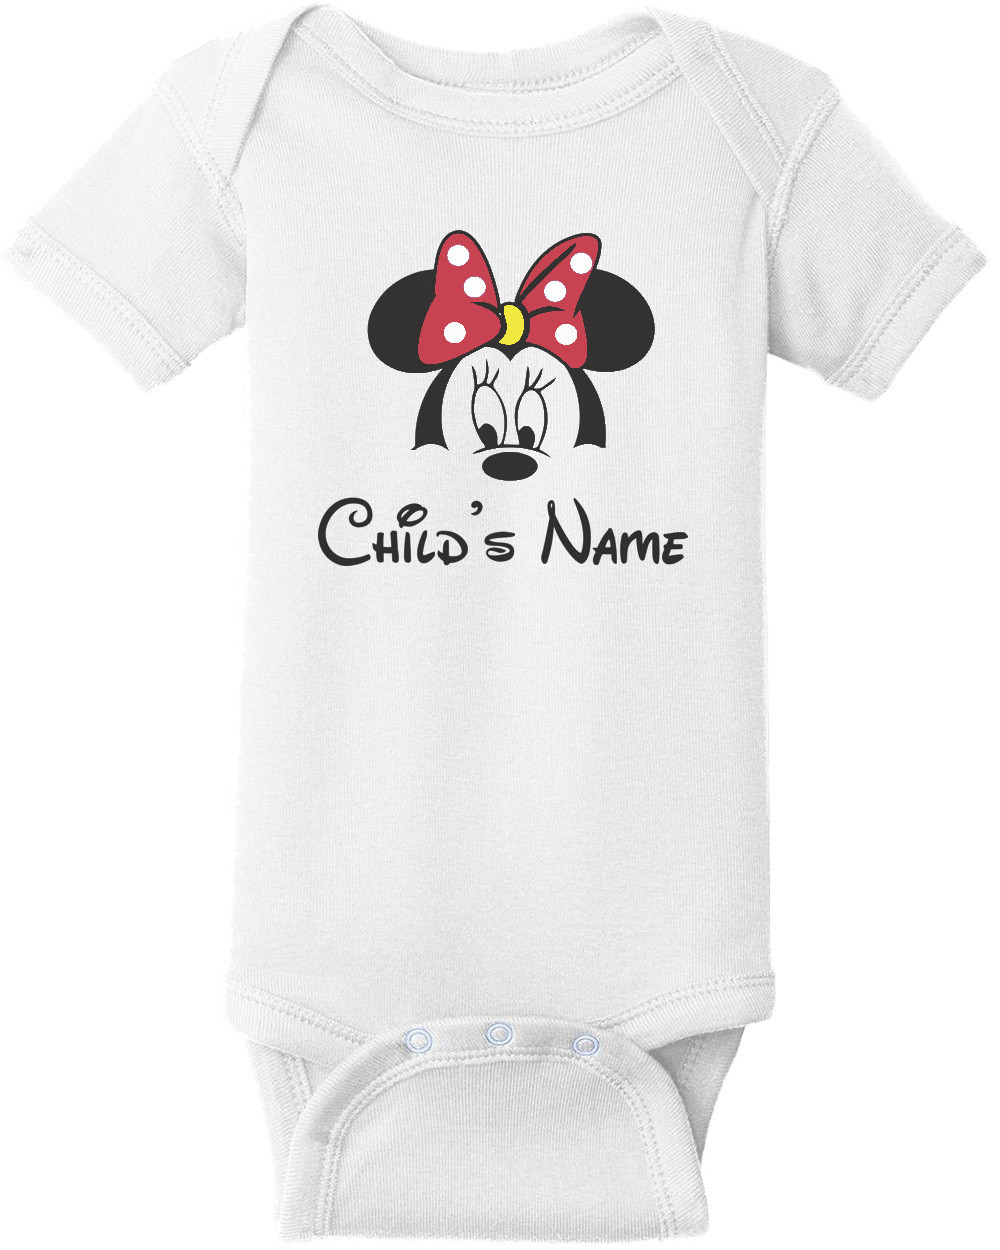 Disney Family Group Shirts - Minnie Mouse - Child's Name - Disney T-Shirt